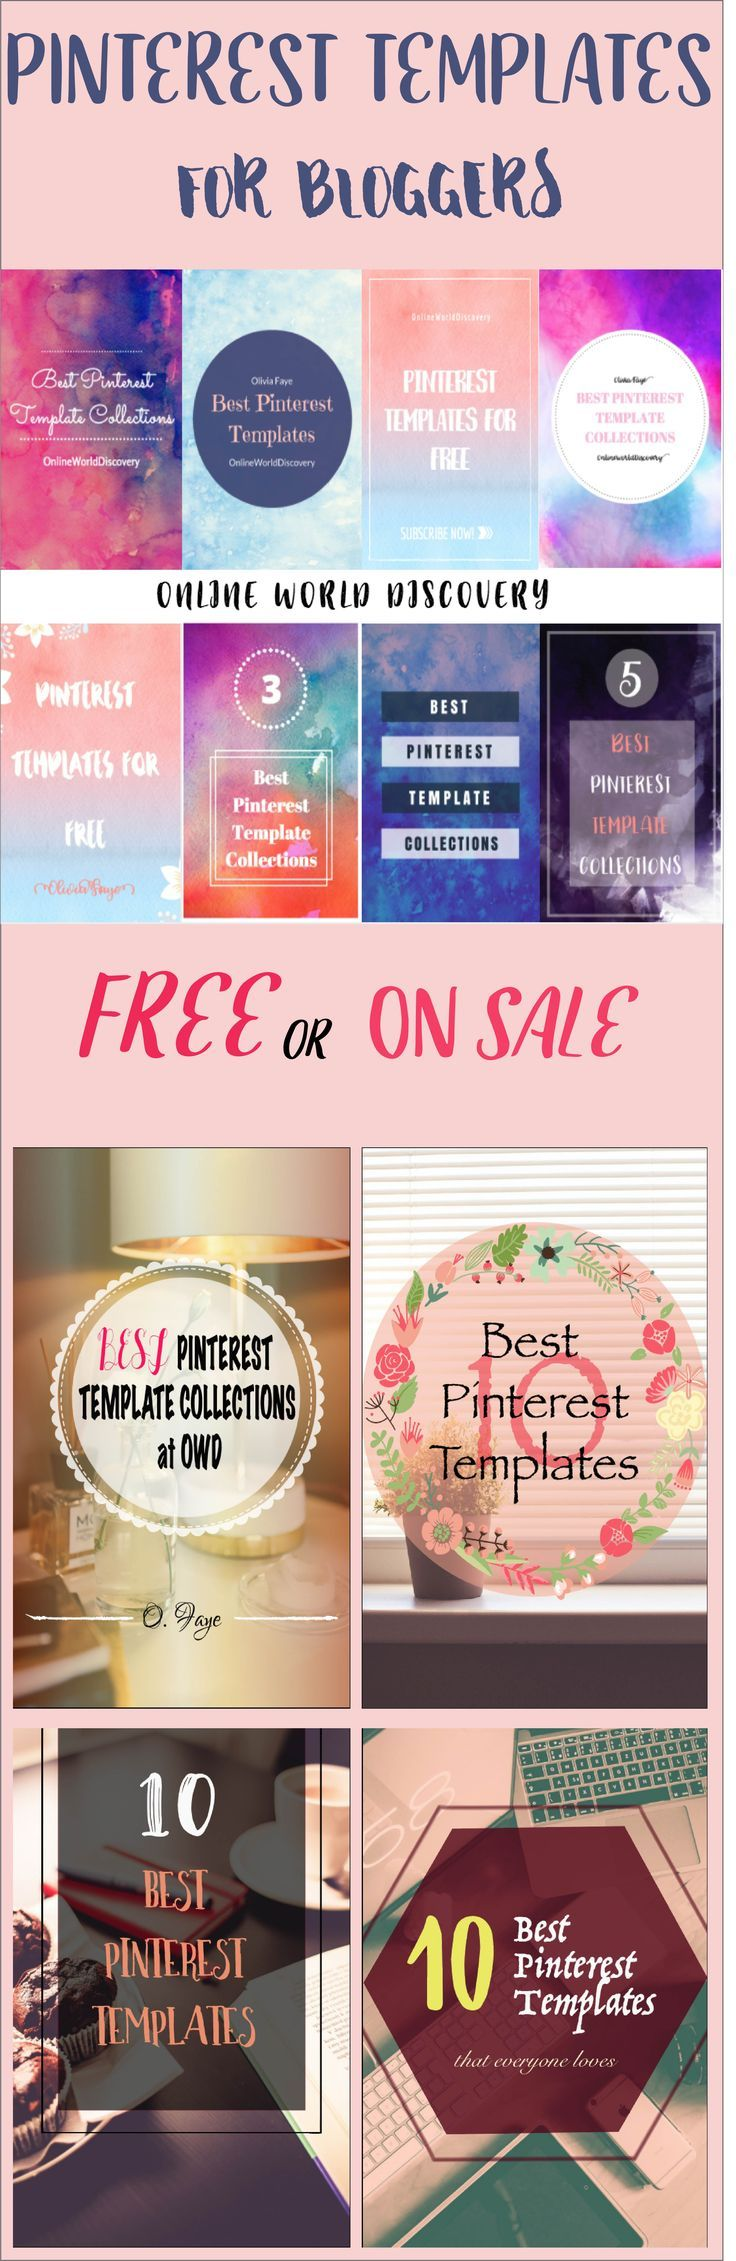 50 Premium Pinterest Templates either FREE or On BIG SALE for a limited time only! Don't miss out!